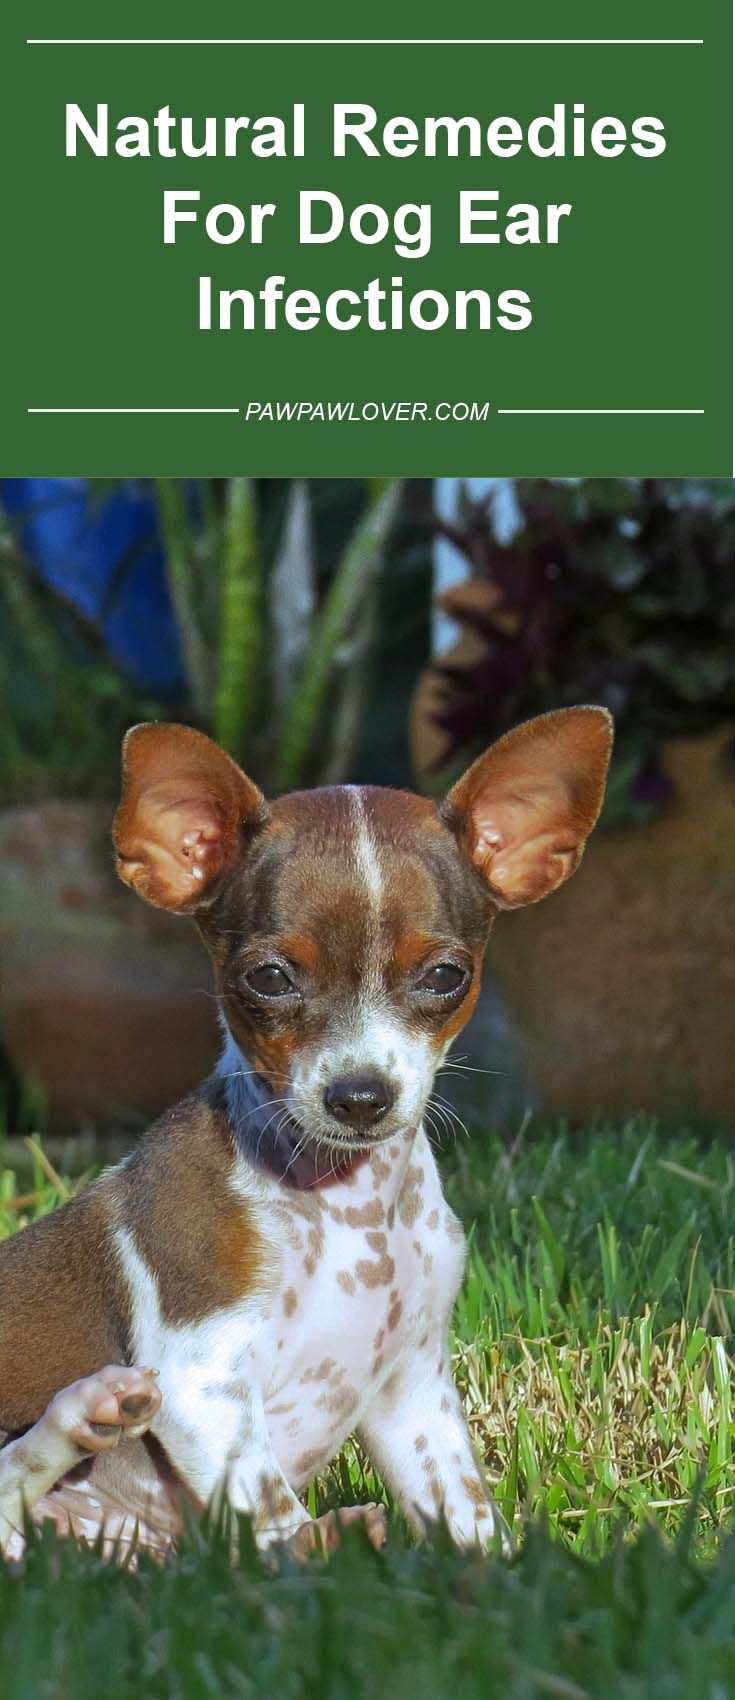 Natural Remedies For Dog Ear Infections 2019 – #15 Antibiotic